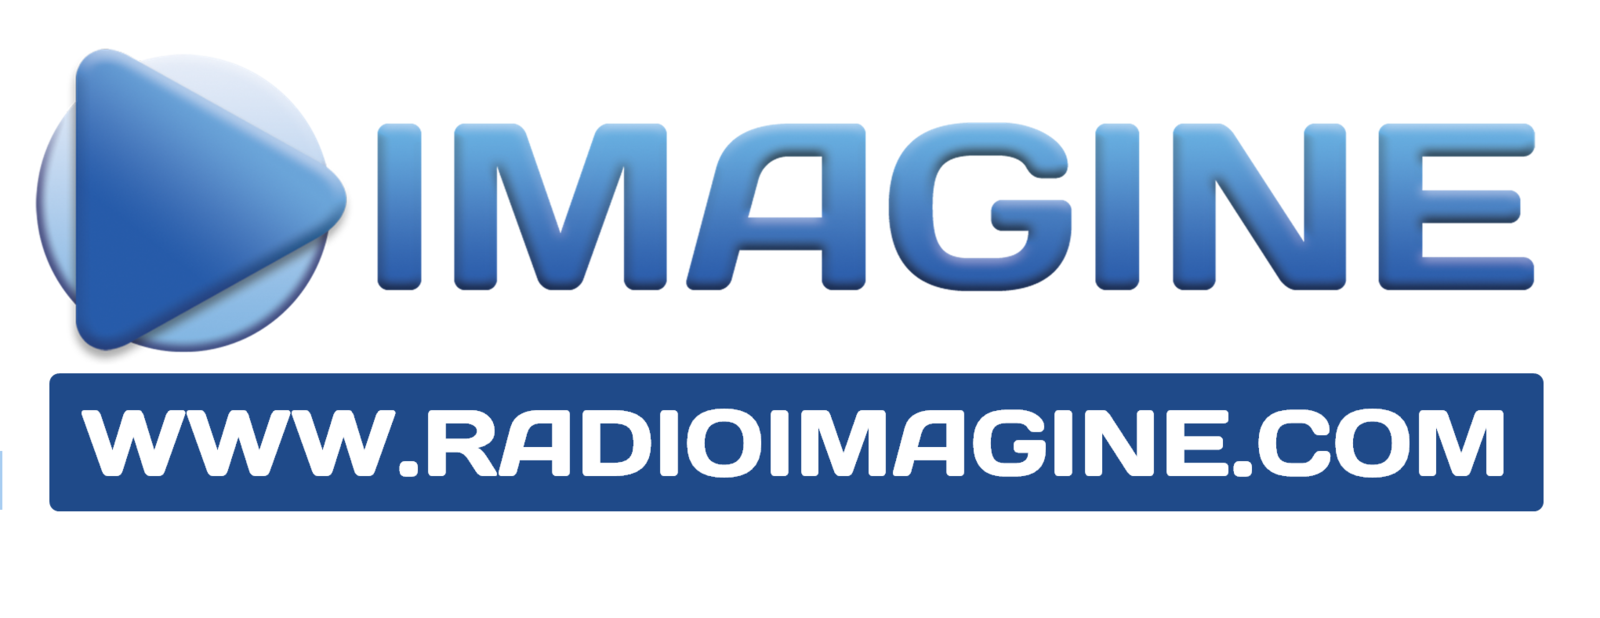 Radio Imagine - Salon Agriculture 2016 : Interview de Laurent FOUGAIROLLE, Apiculteur dans les Hautes-Alpes